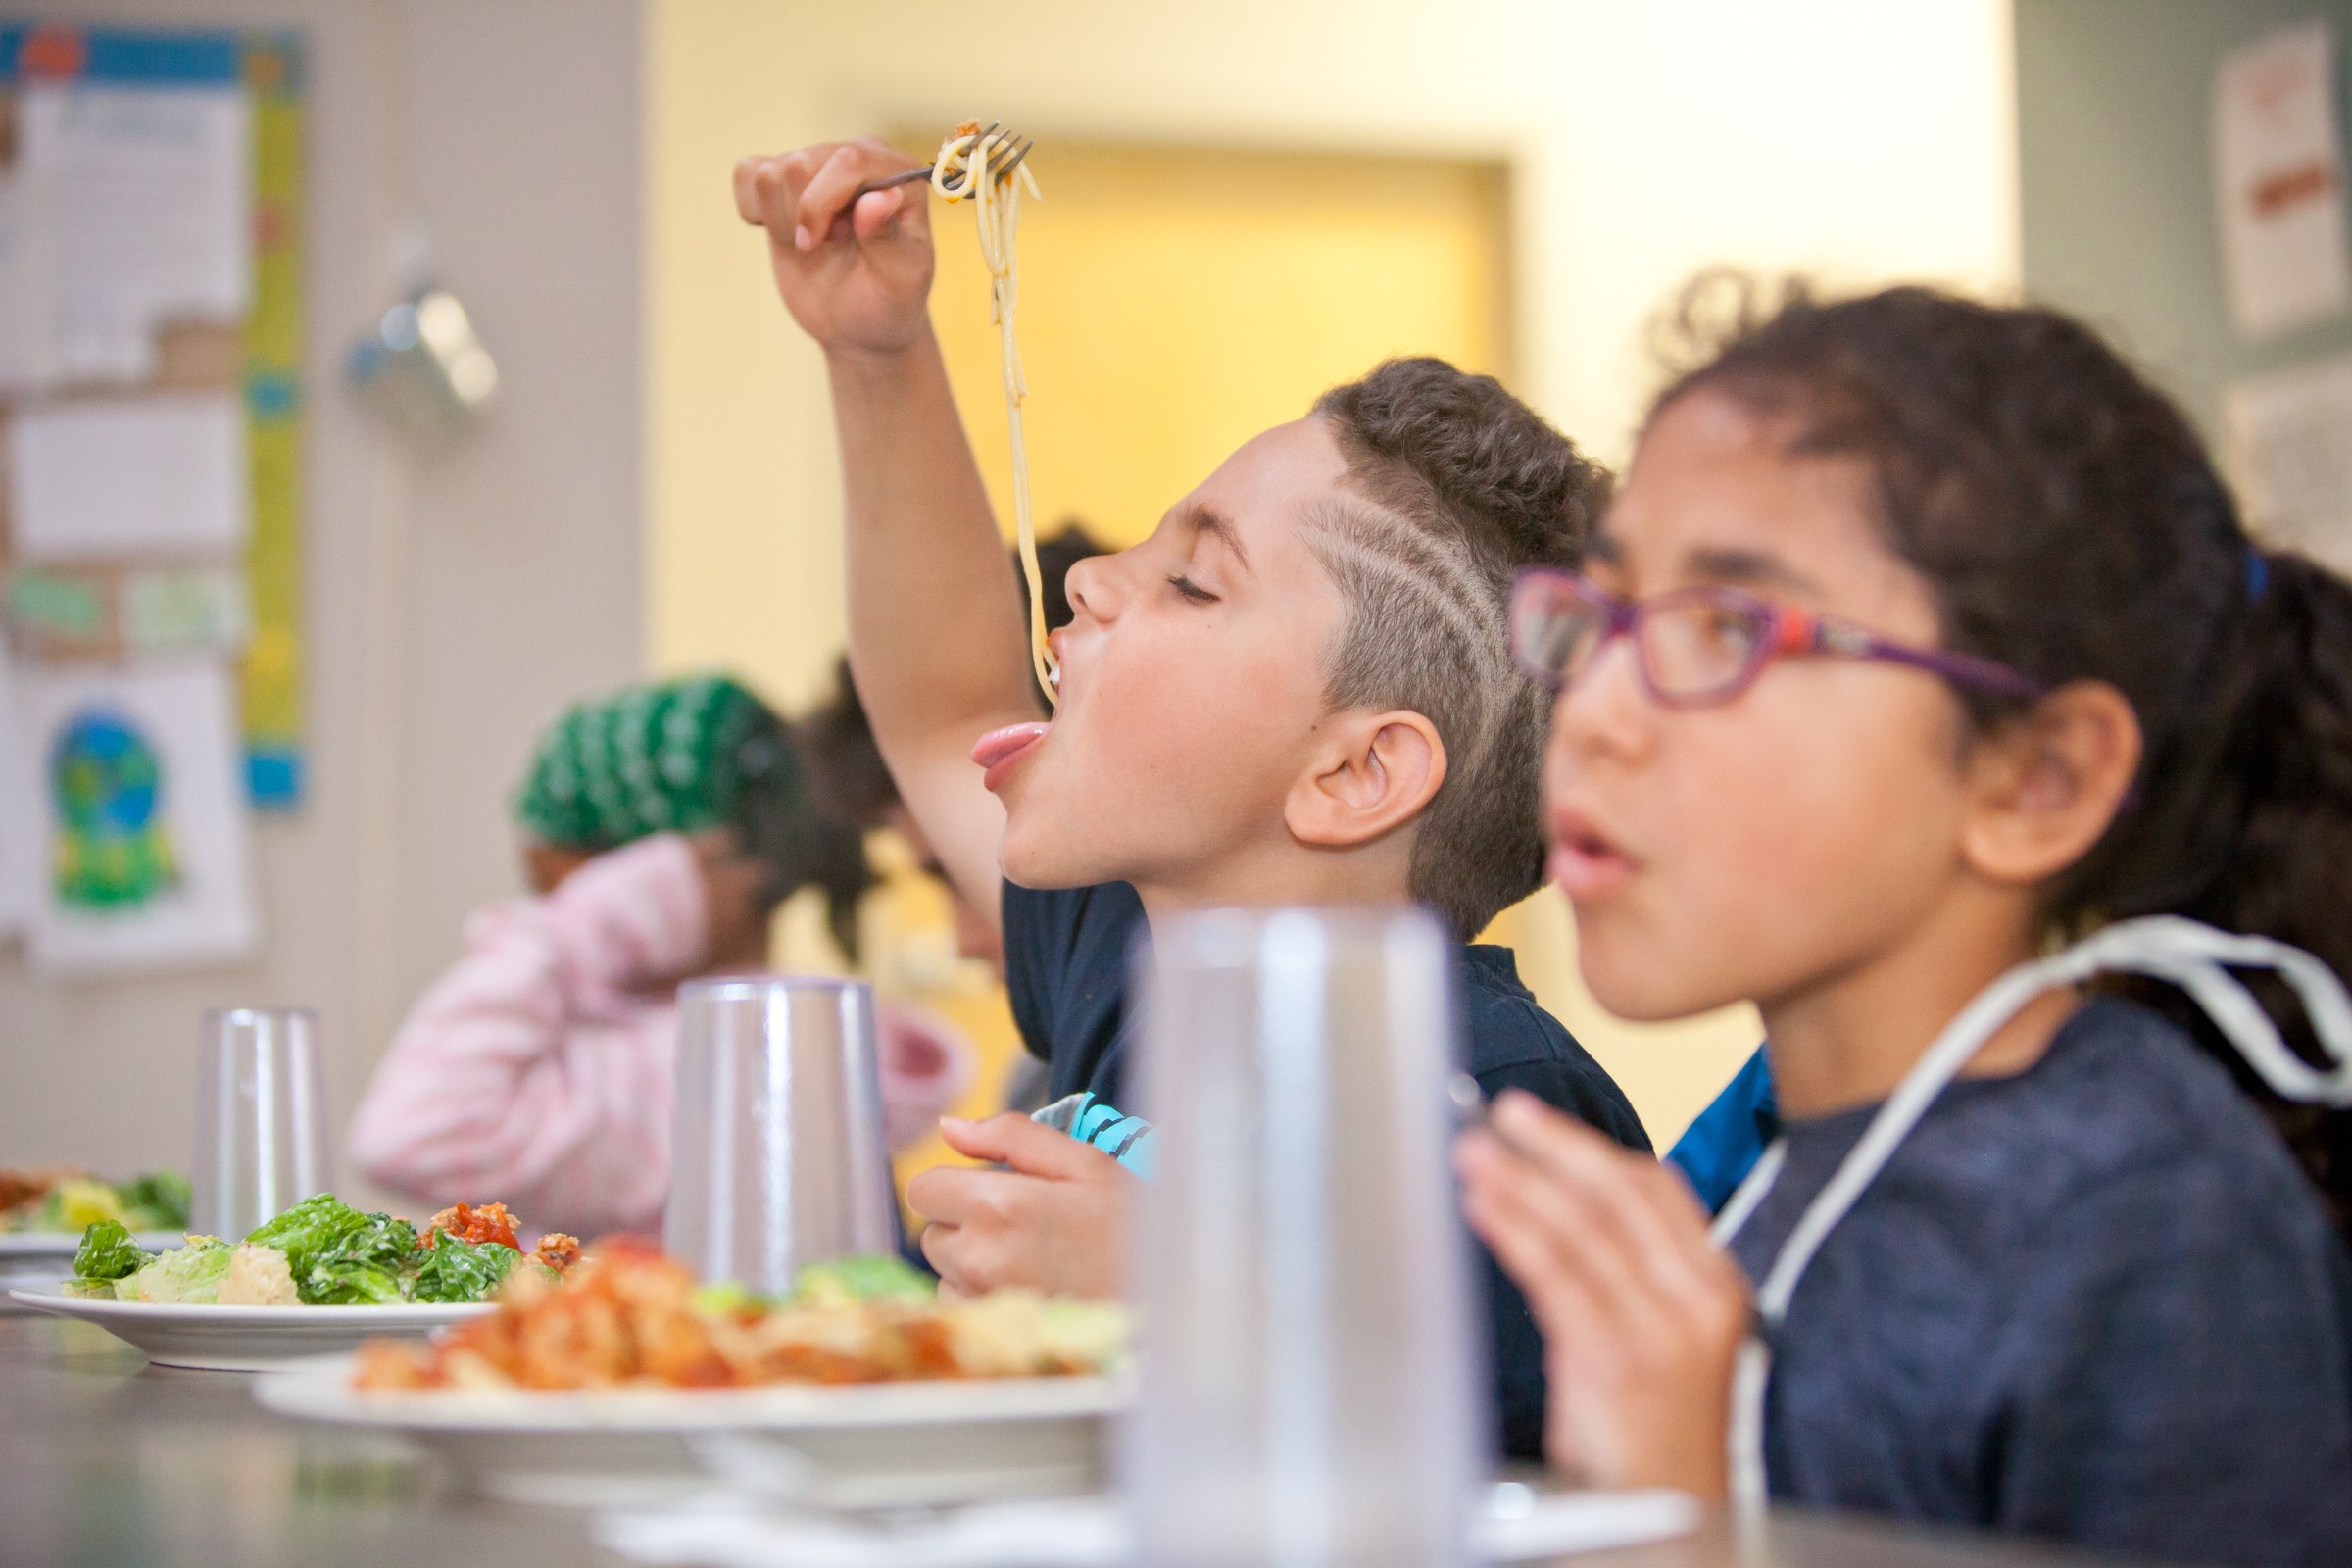 Twins Skye and Isaiah took part in the Young Cooks program at the Dartmouth North Community Food Centre.